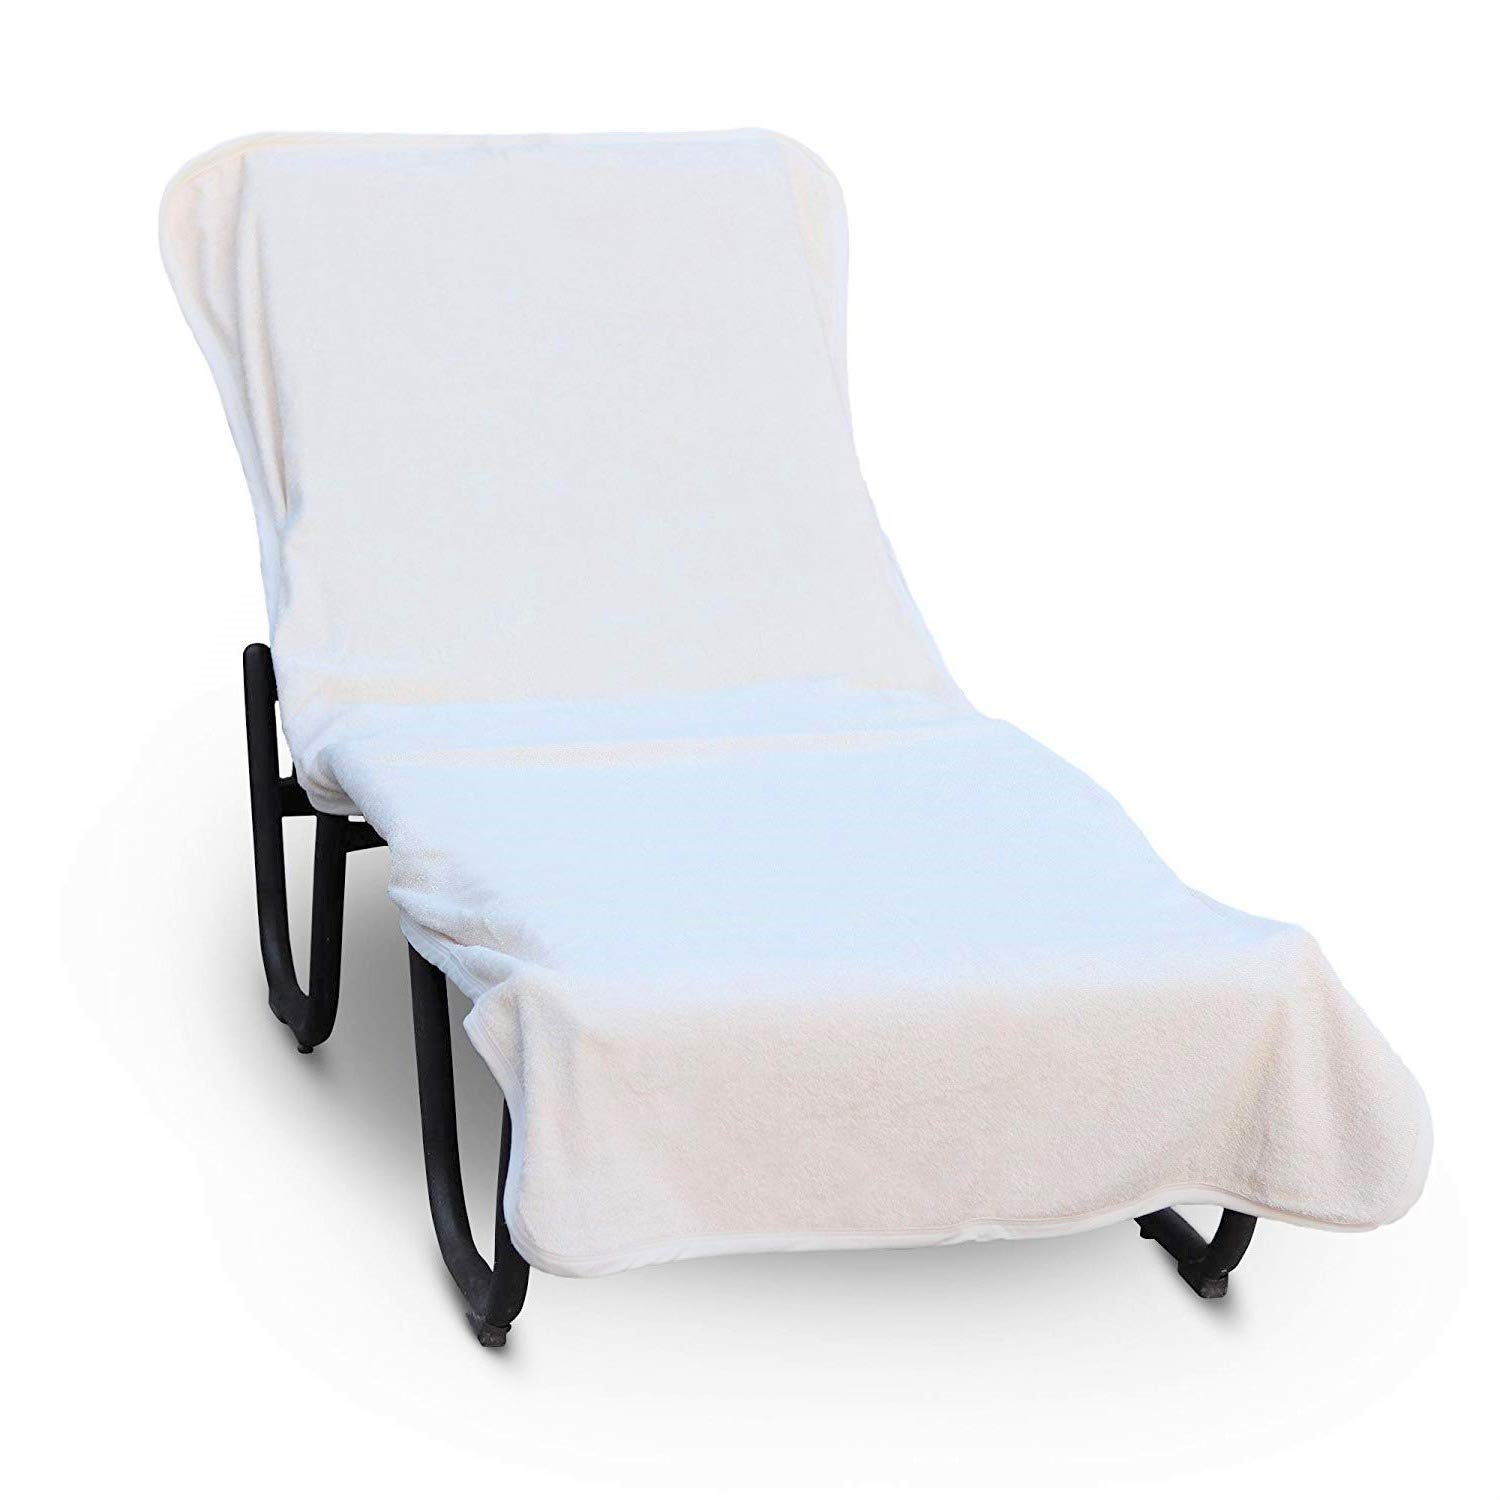 Luxury Hotel & Spa Towel Pool Chair Cover 100% Cotton, Soft Ring-Spun Cotton,Standard Size, White